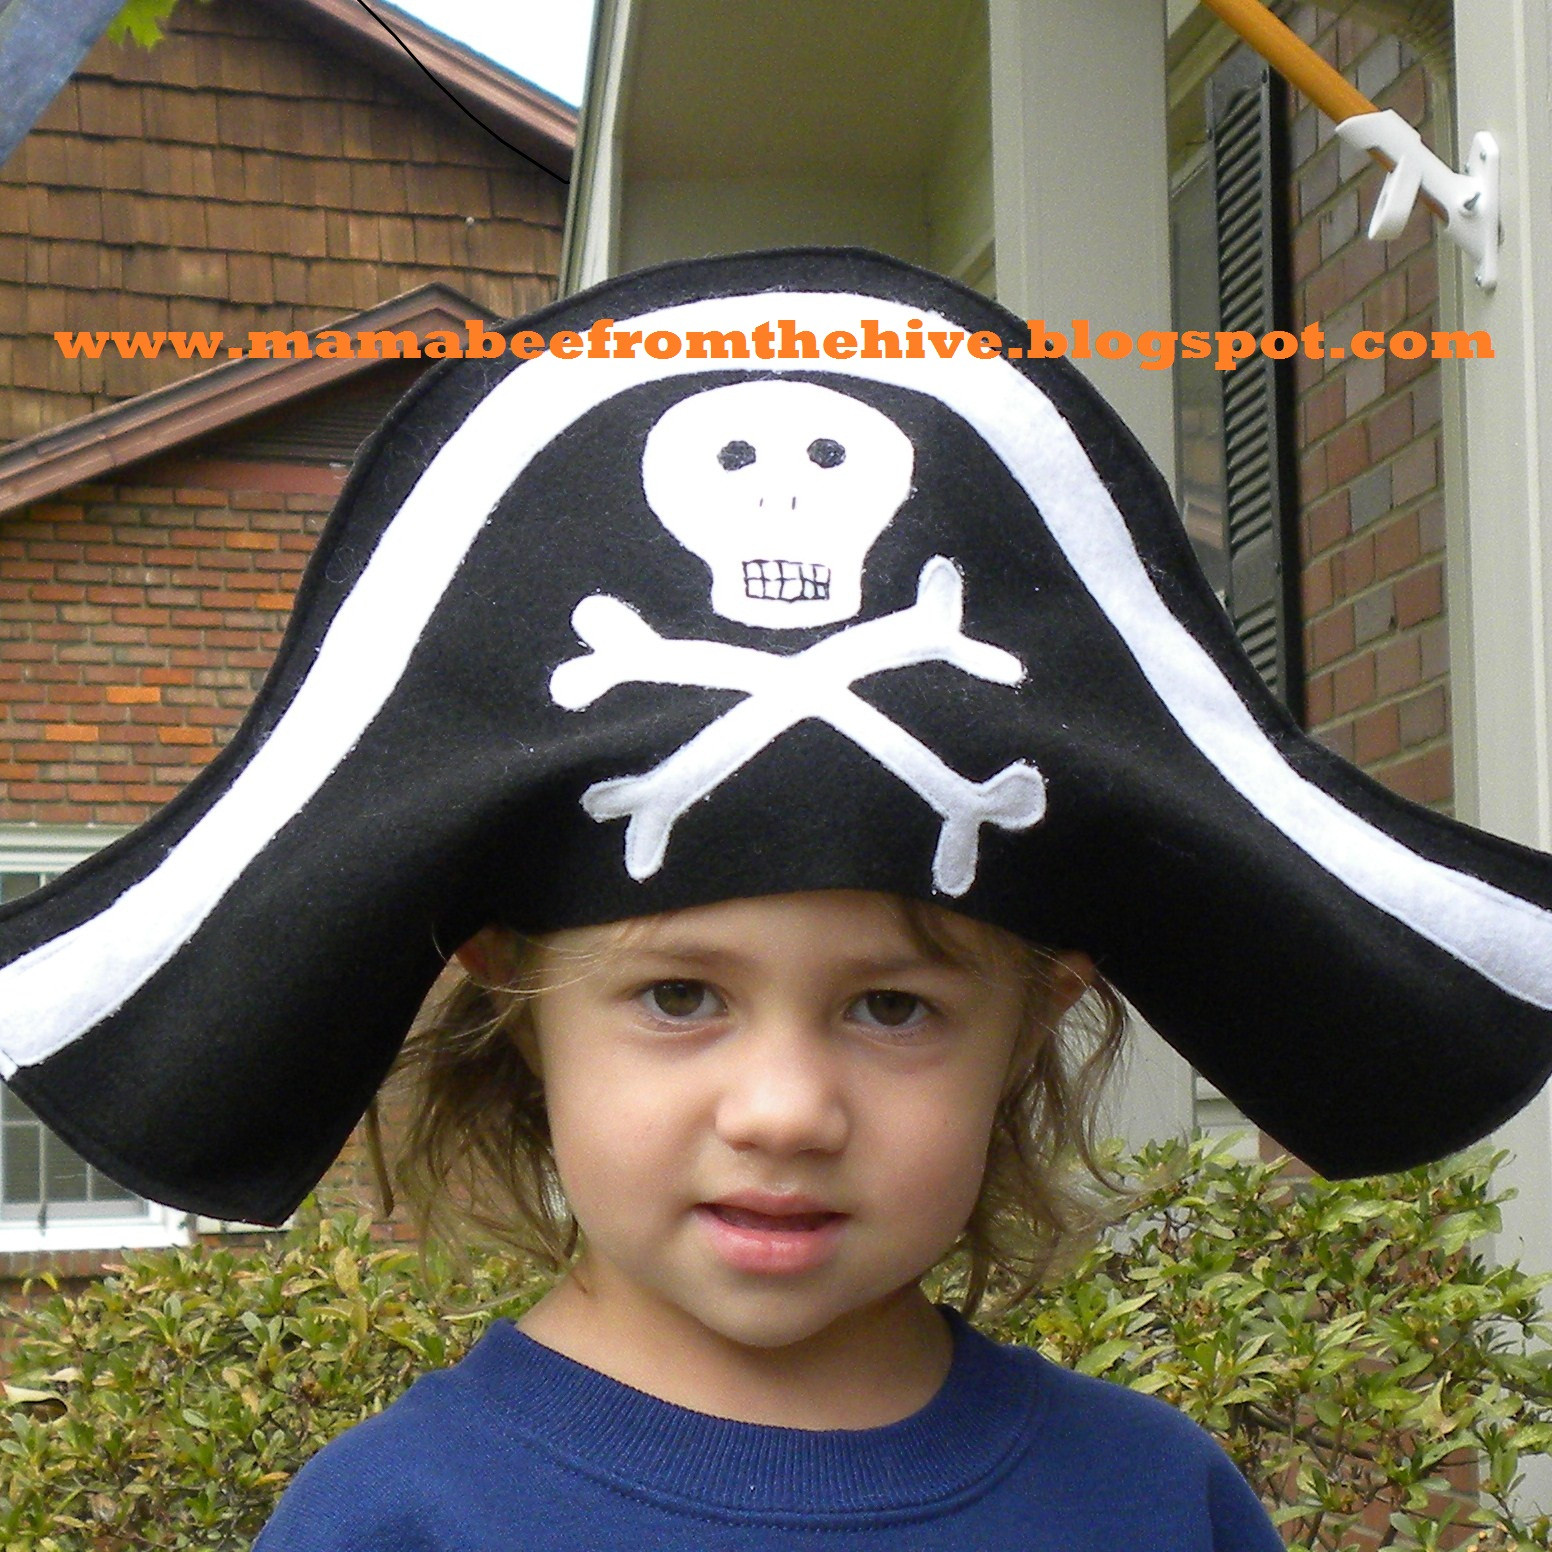 Best ideas about DIY Pirate Hat . Save or Pin From The Hive pirate hat tutorial Now.